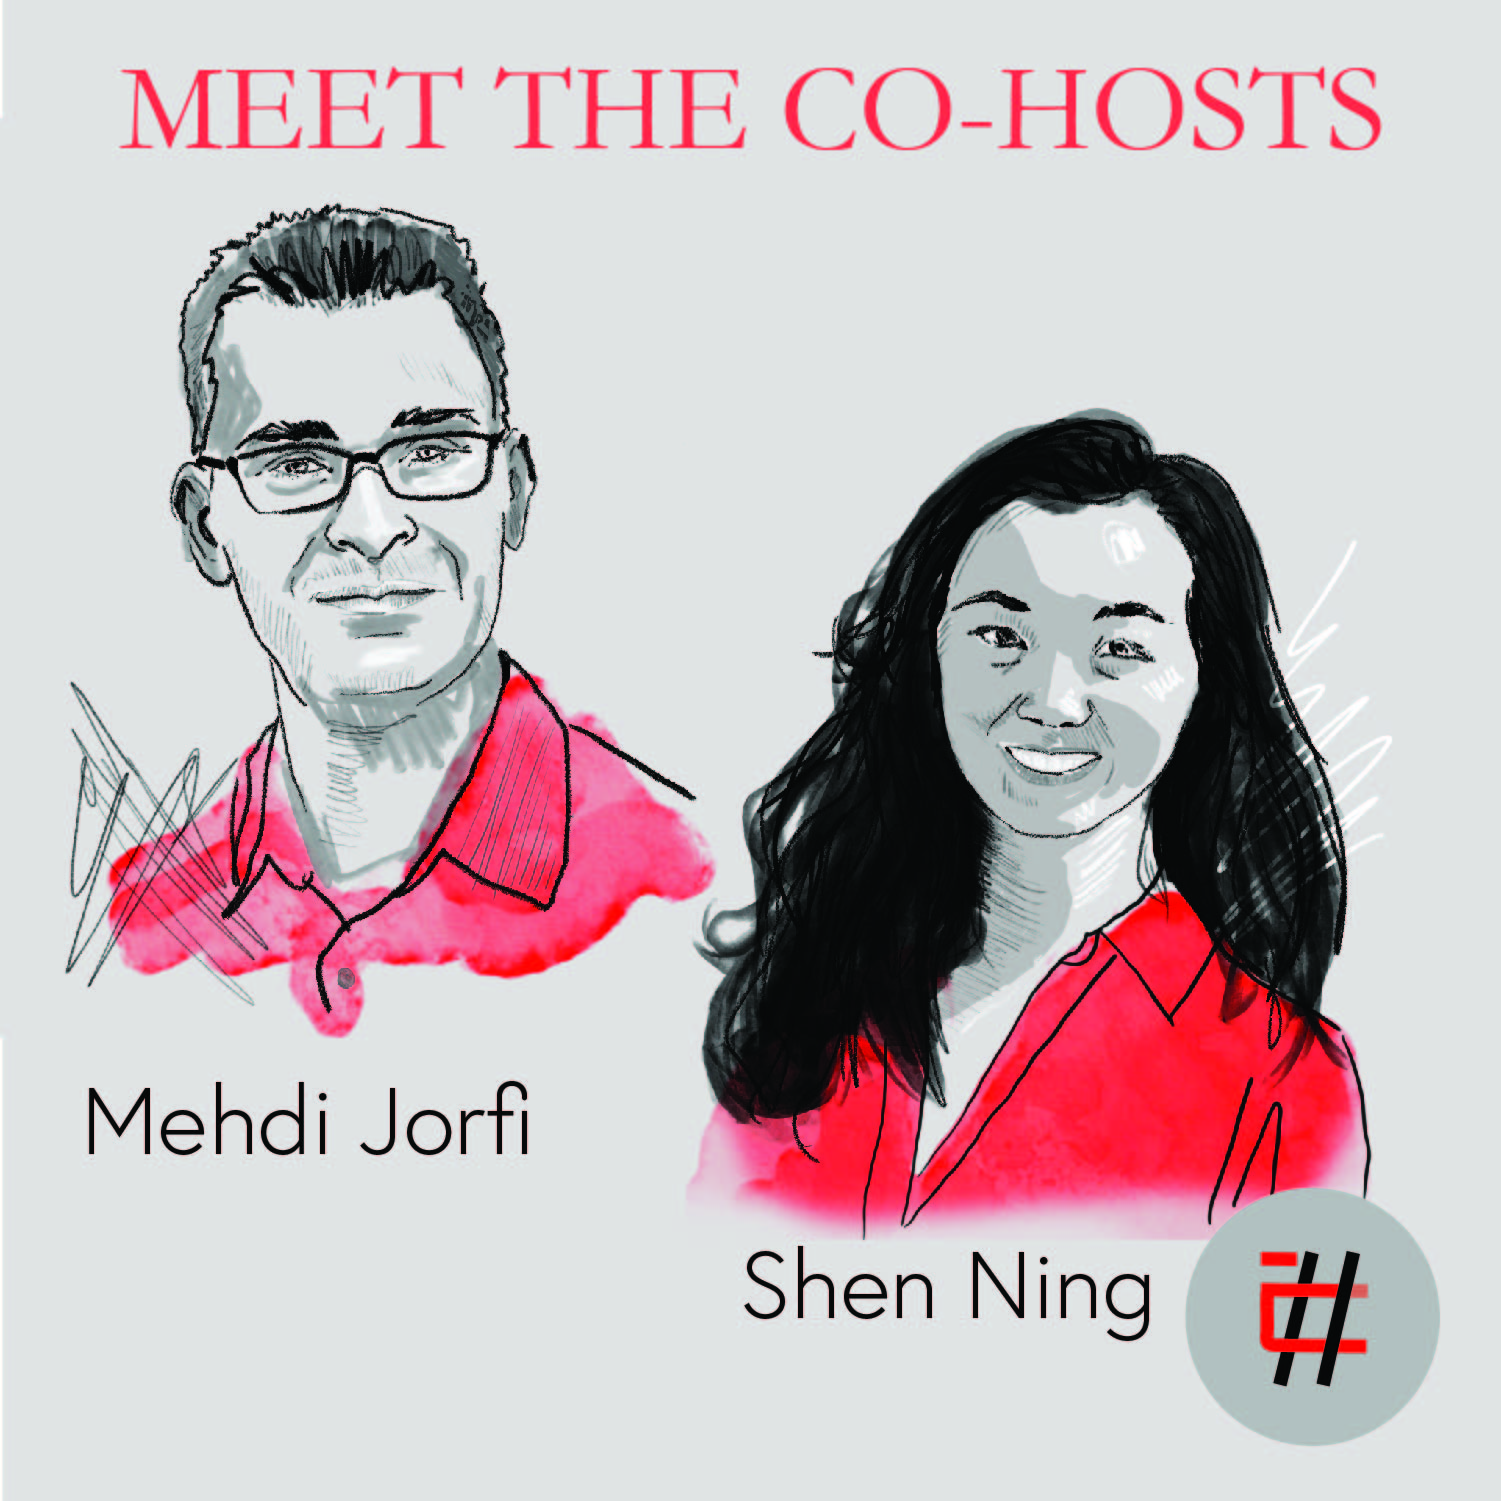 Meet the co-hosts: Our Motivation